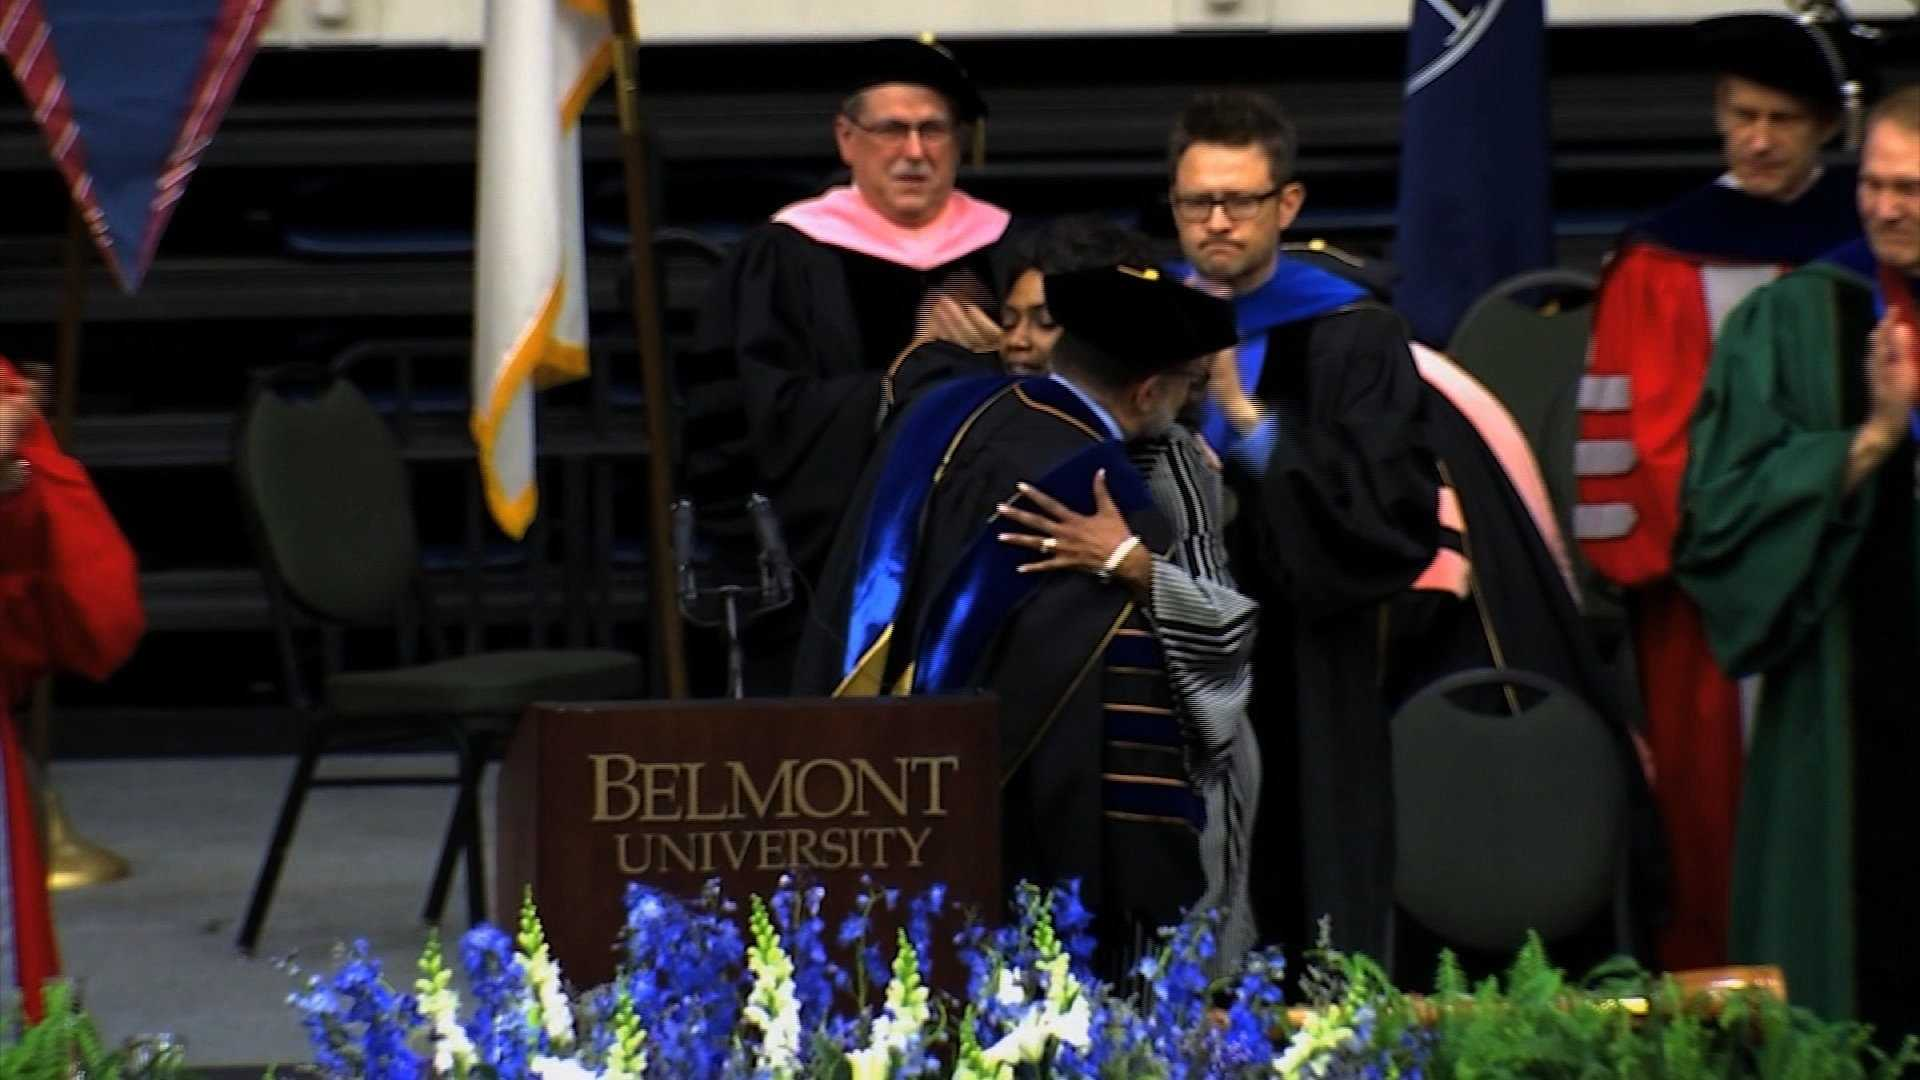 Shirl Baker received a posthumous degree from Belmont University in her daughter's honor on Saturday.